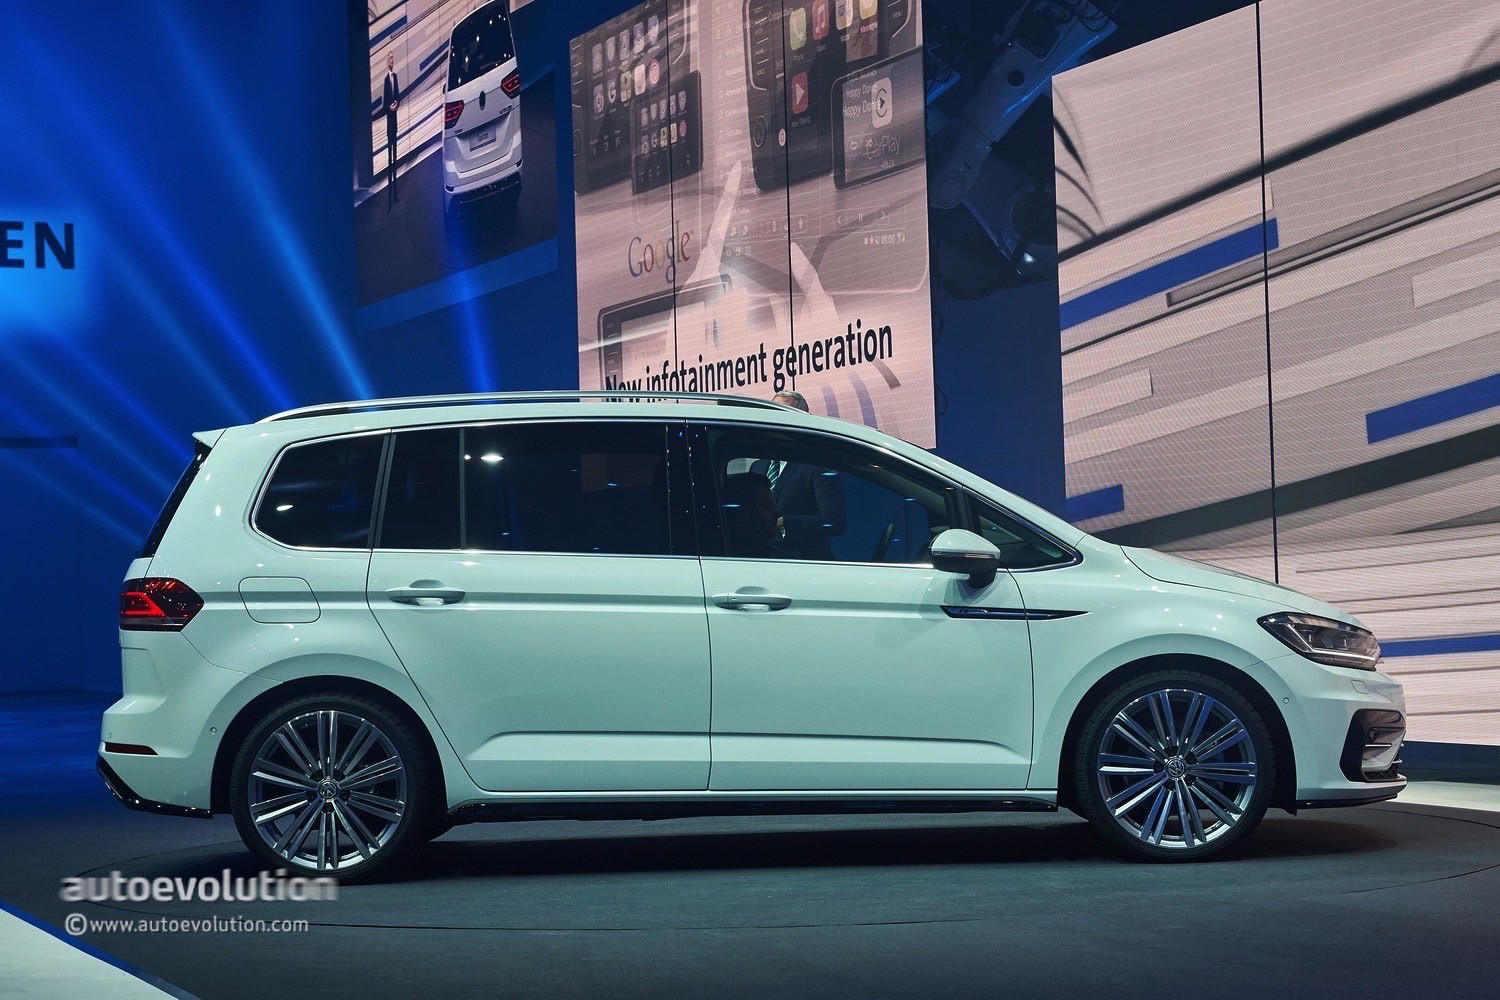 2016 volkswagen touran enters production in wolfsburg configurator launched autoevolution. Black Bedroom Furniture Sets. Home Design Ideas